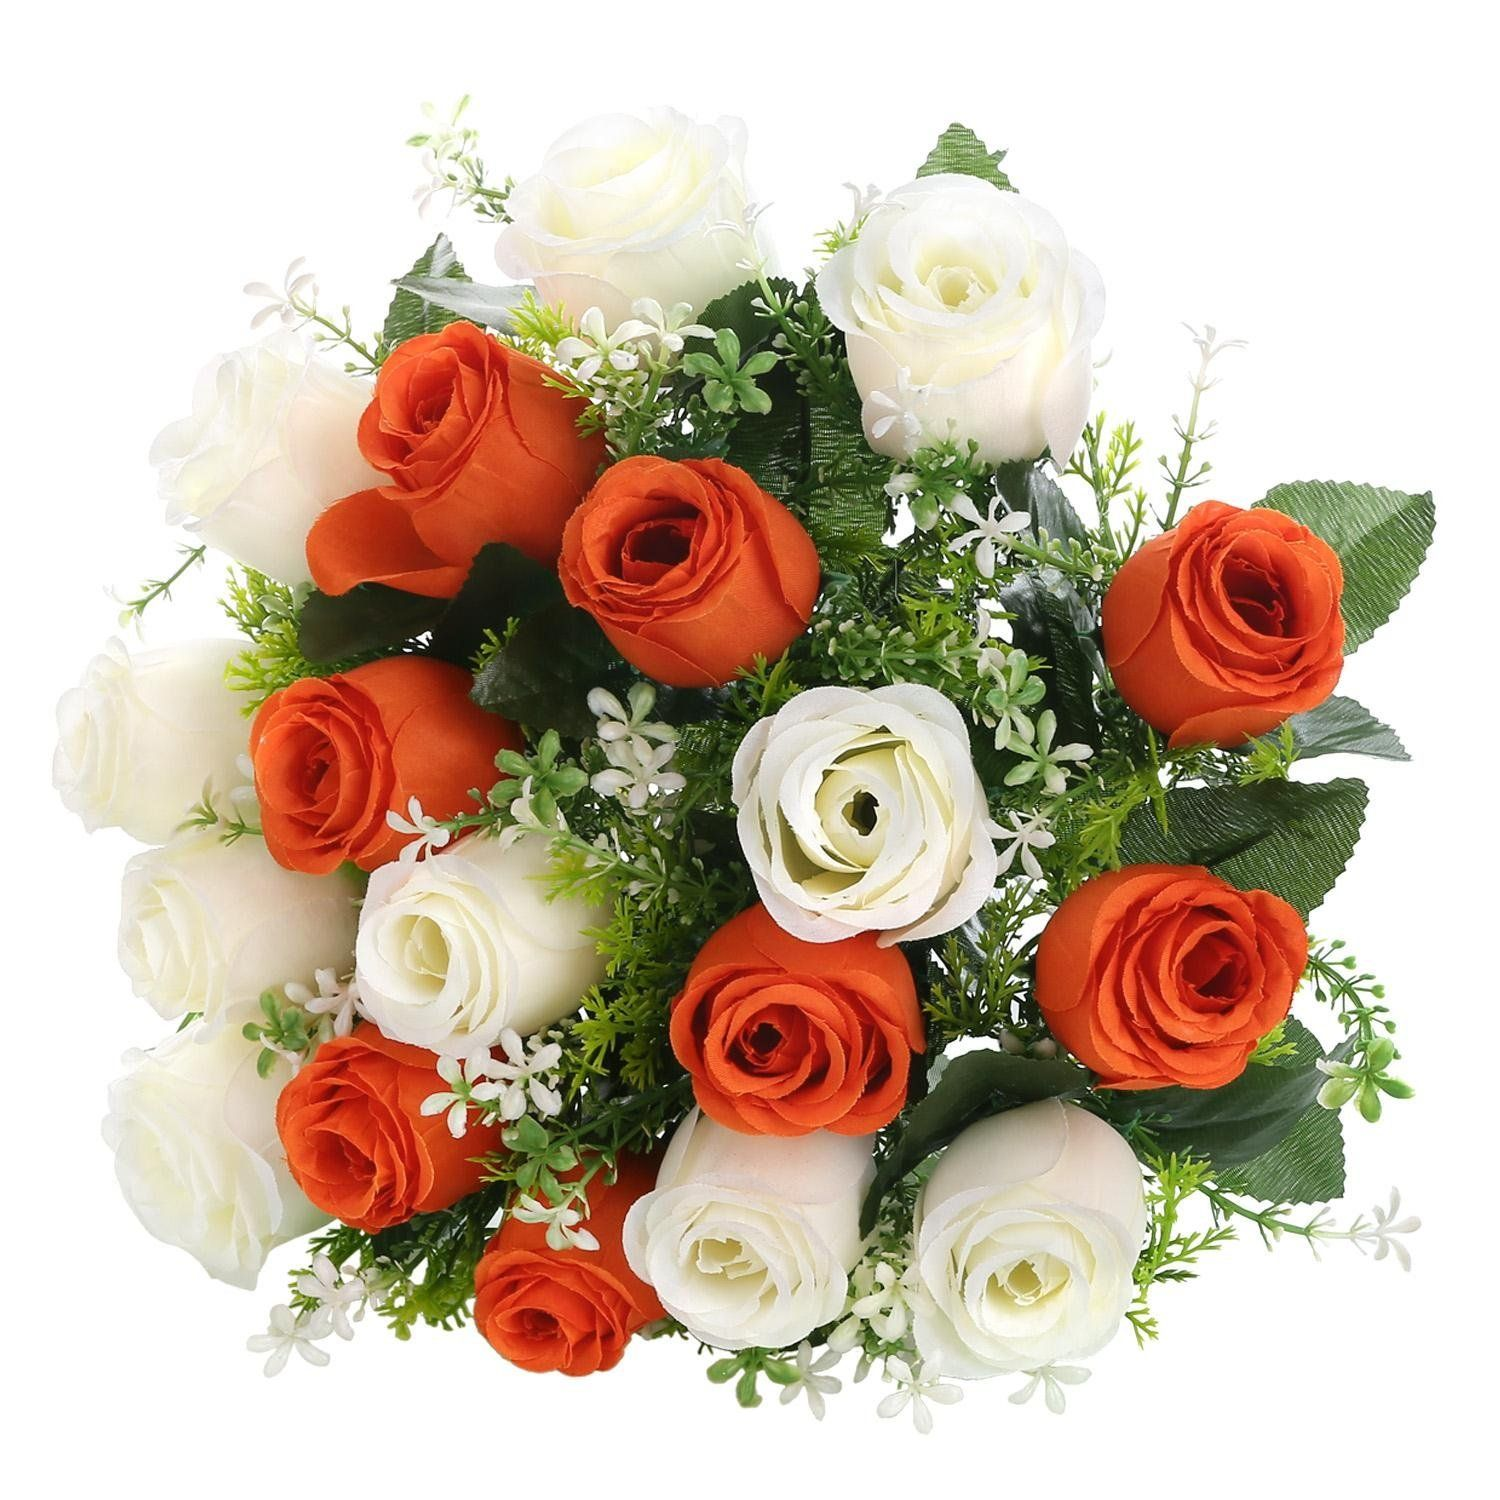 SOLEDI Artificial Flowers 18 Heads Mix Color Simulation Roses Bud ...